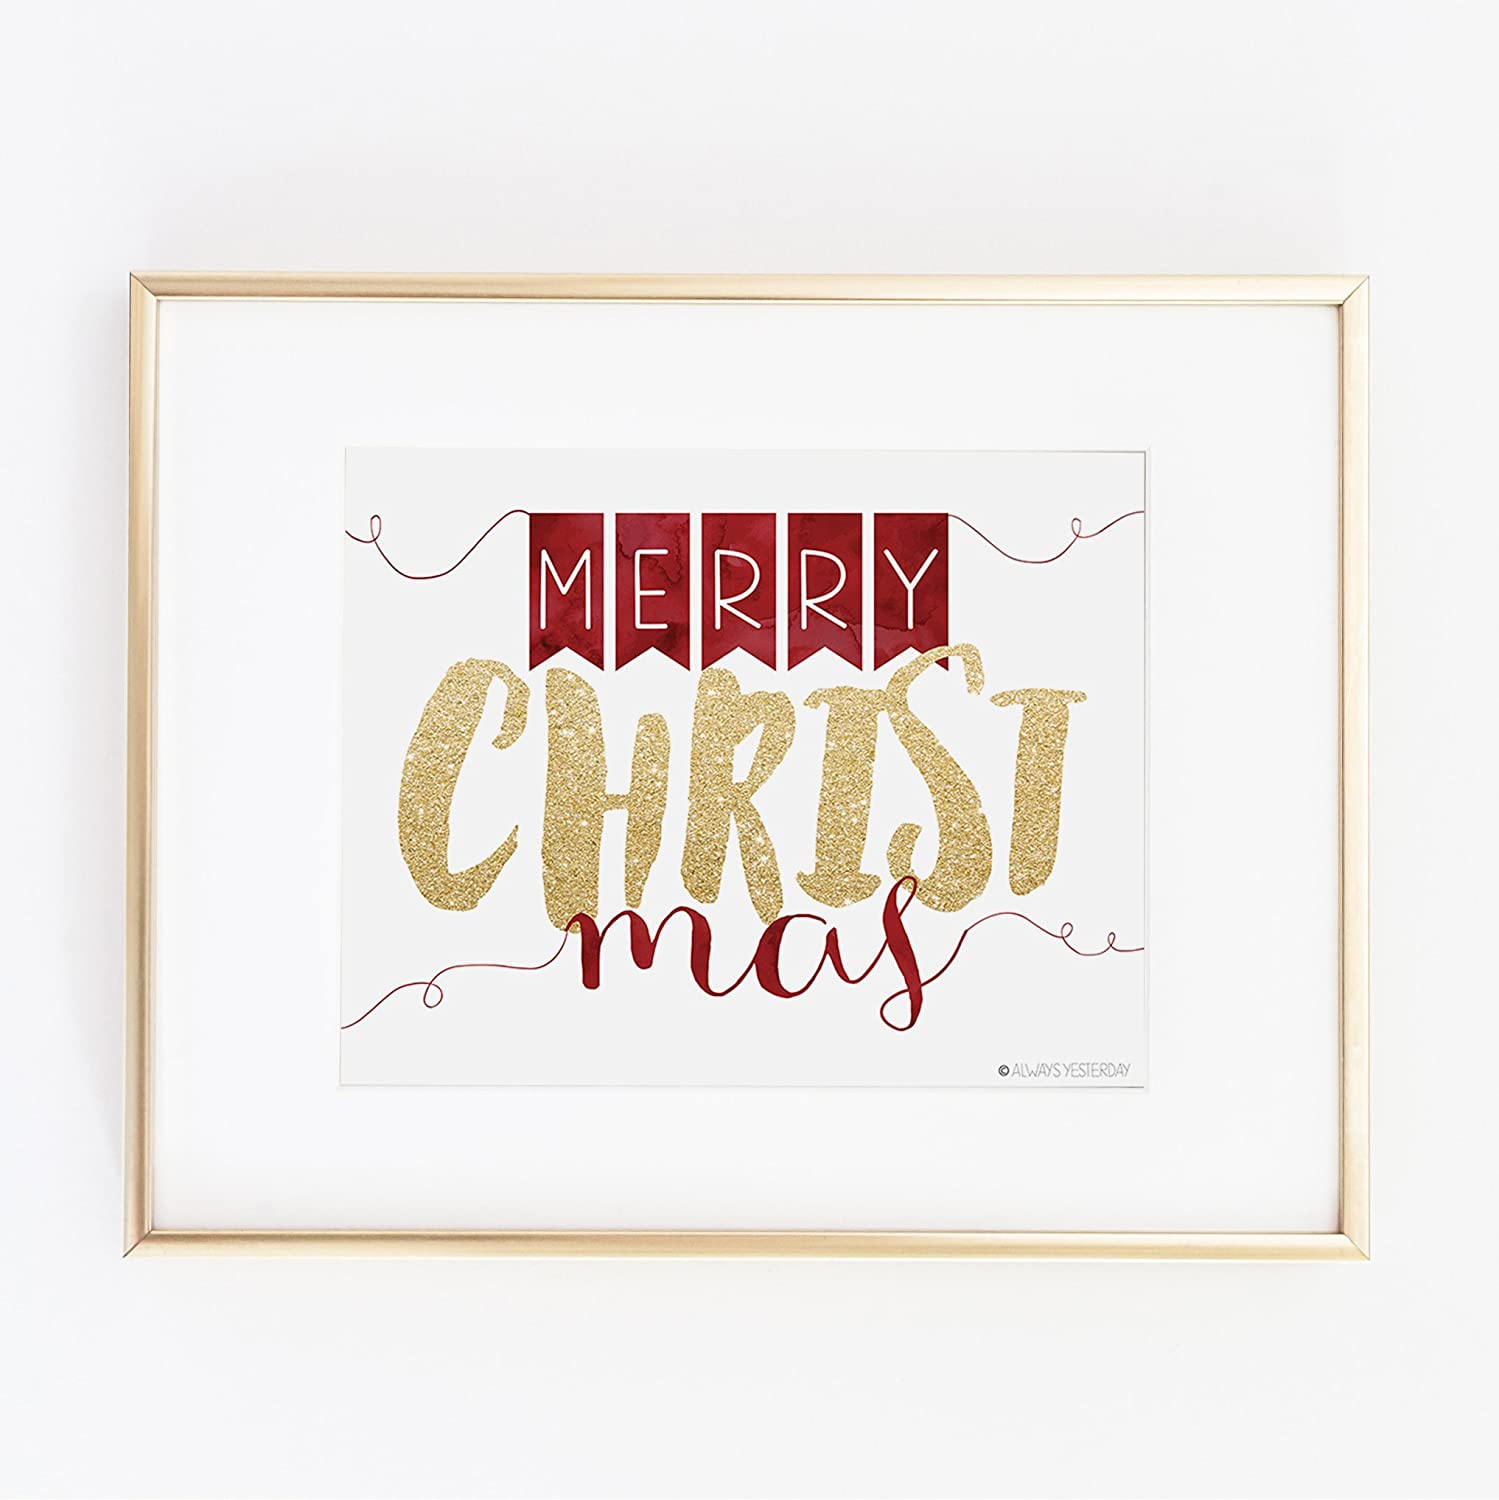 photo about Merry Christmas Sign Printable named : Merry CHRIST mas As a result of Often Yesterday Prints